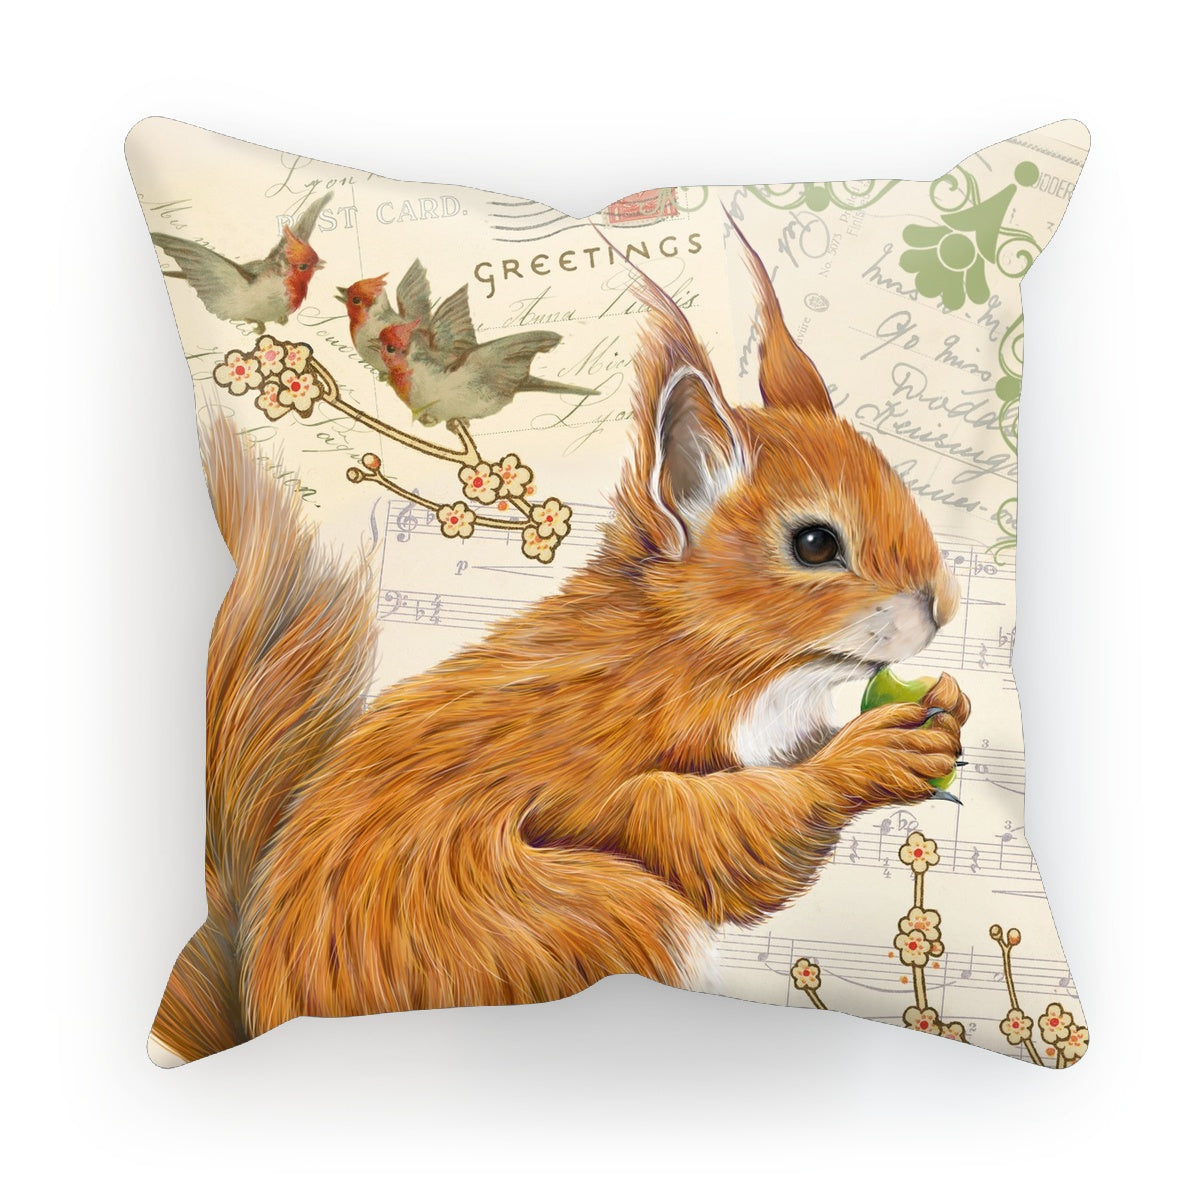 Vintage Style Squirrel Cushion by Fox and Boo